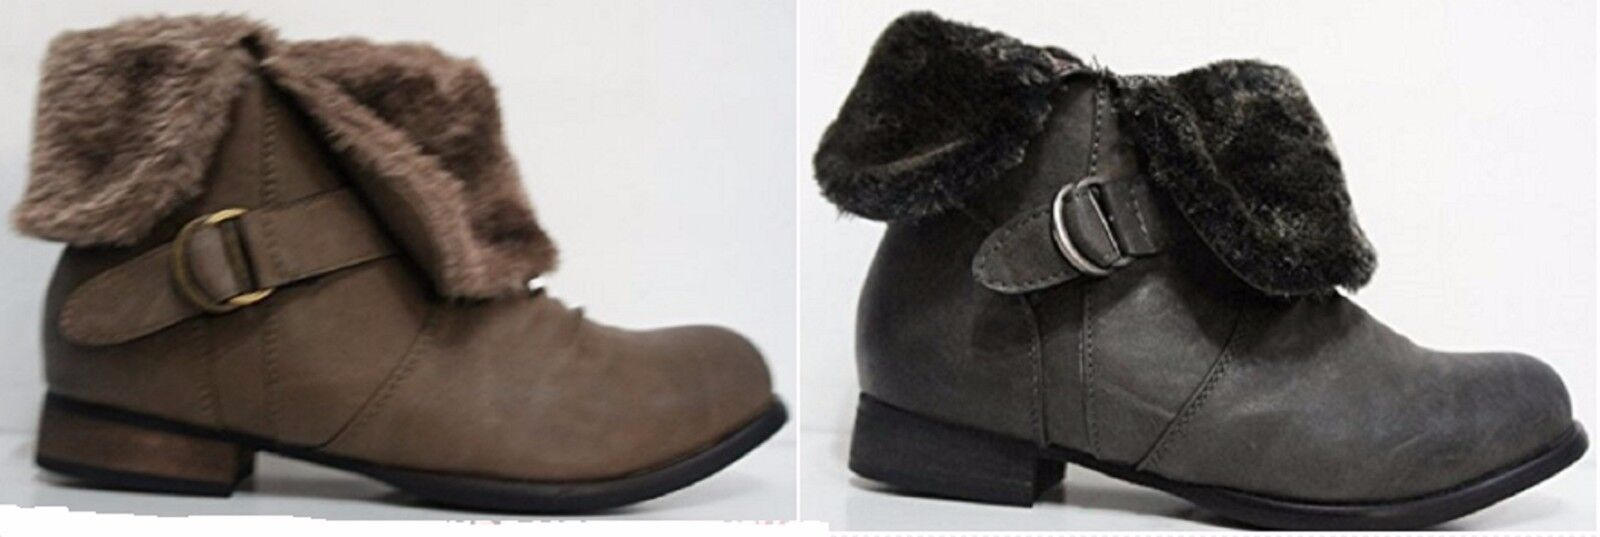 Taupe / Brown or Black Fur Cuff Ankle Boots F5790